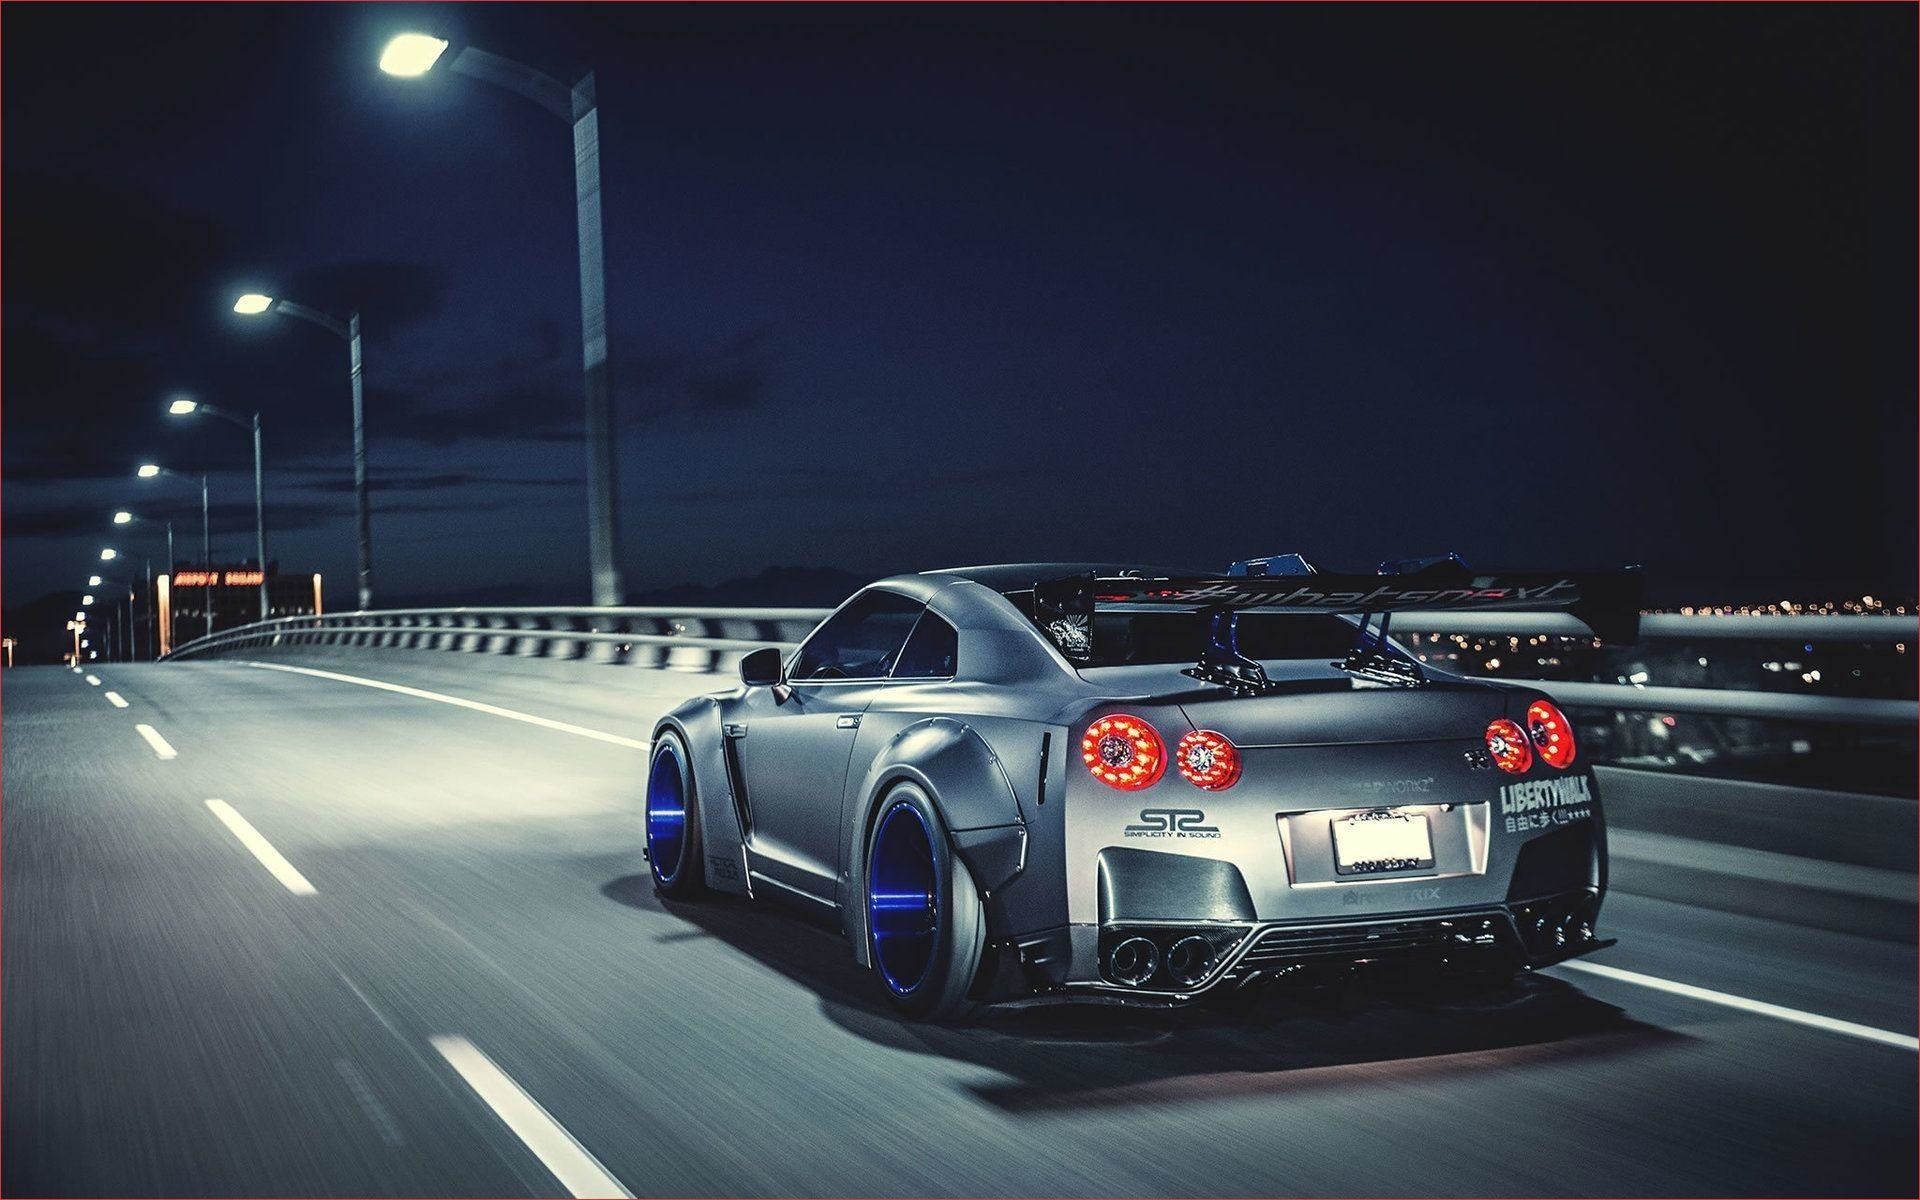 Res: 1920x1200, Auto Draft New Skyline Gtr Wallpaper 79 Images